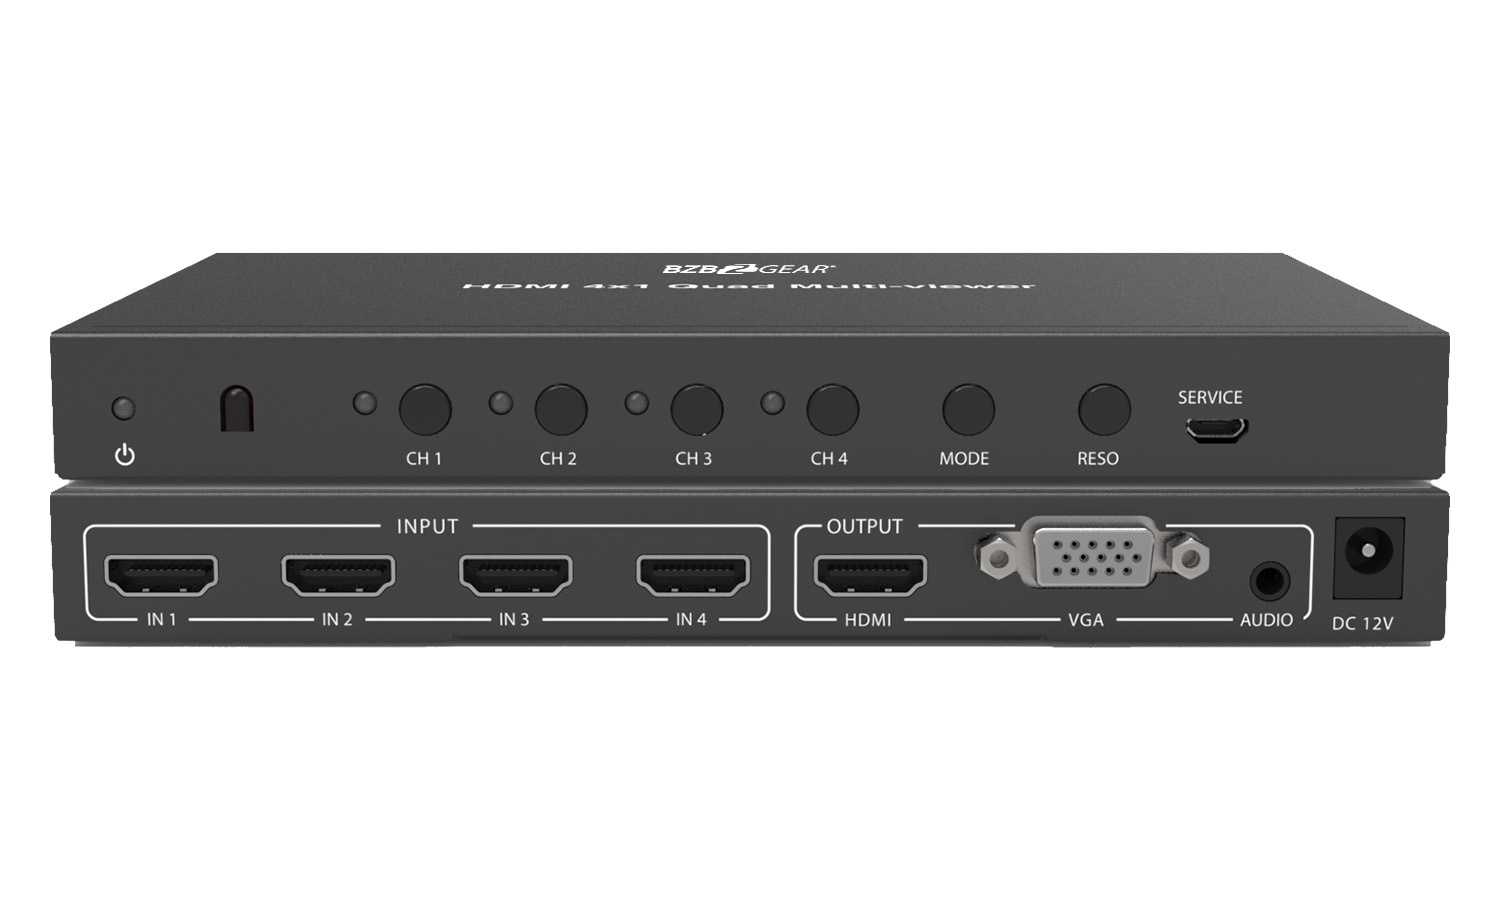 BG-HD-MNA-4X1 HDMI 4X1 Quad MultiViewer by BZBGEAR